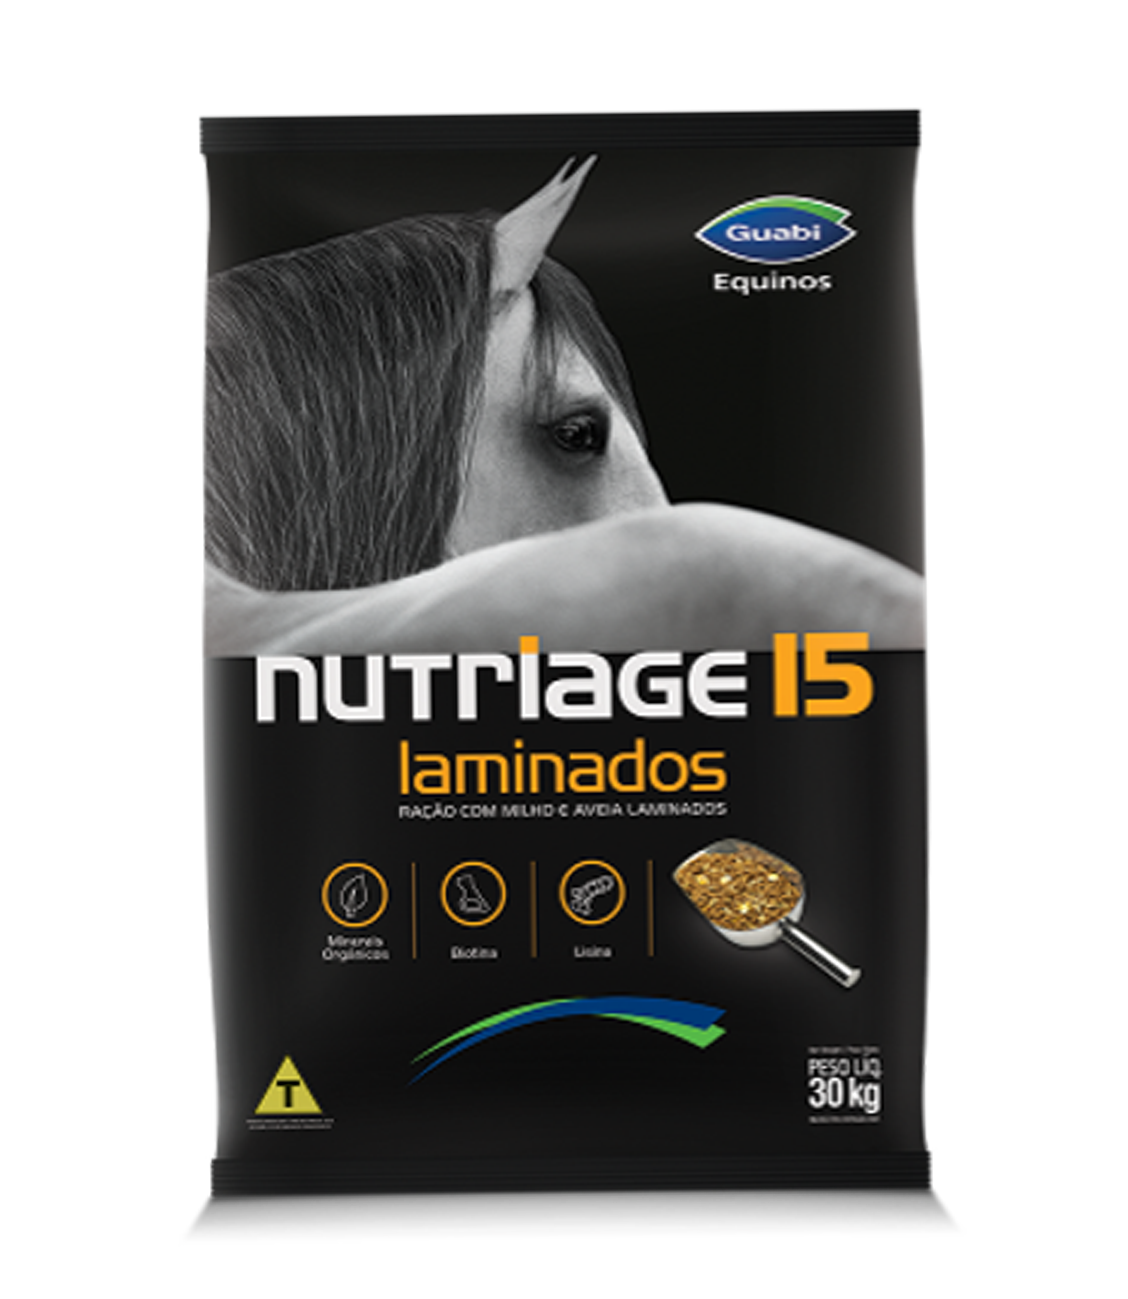 MOCK-UP-DIGITAL-NUTRIAGE-15-LAMINADOS-RGB-1128x1299